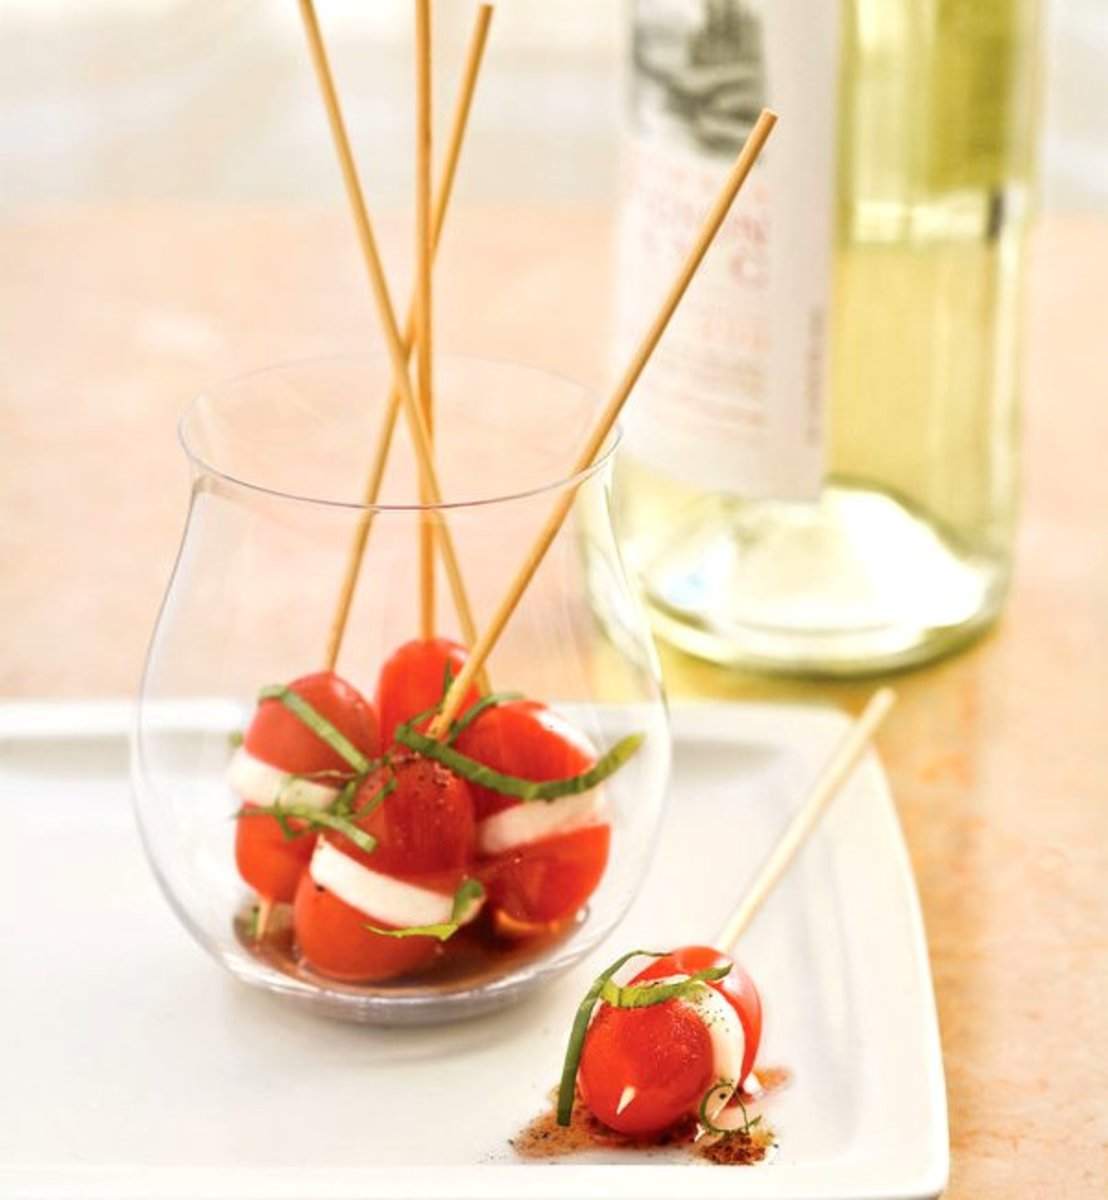 This Easter appetizer is a version of a Caprese salad on skewers.